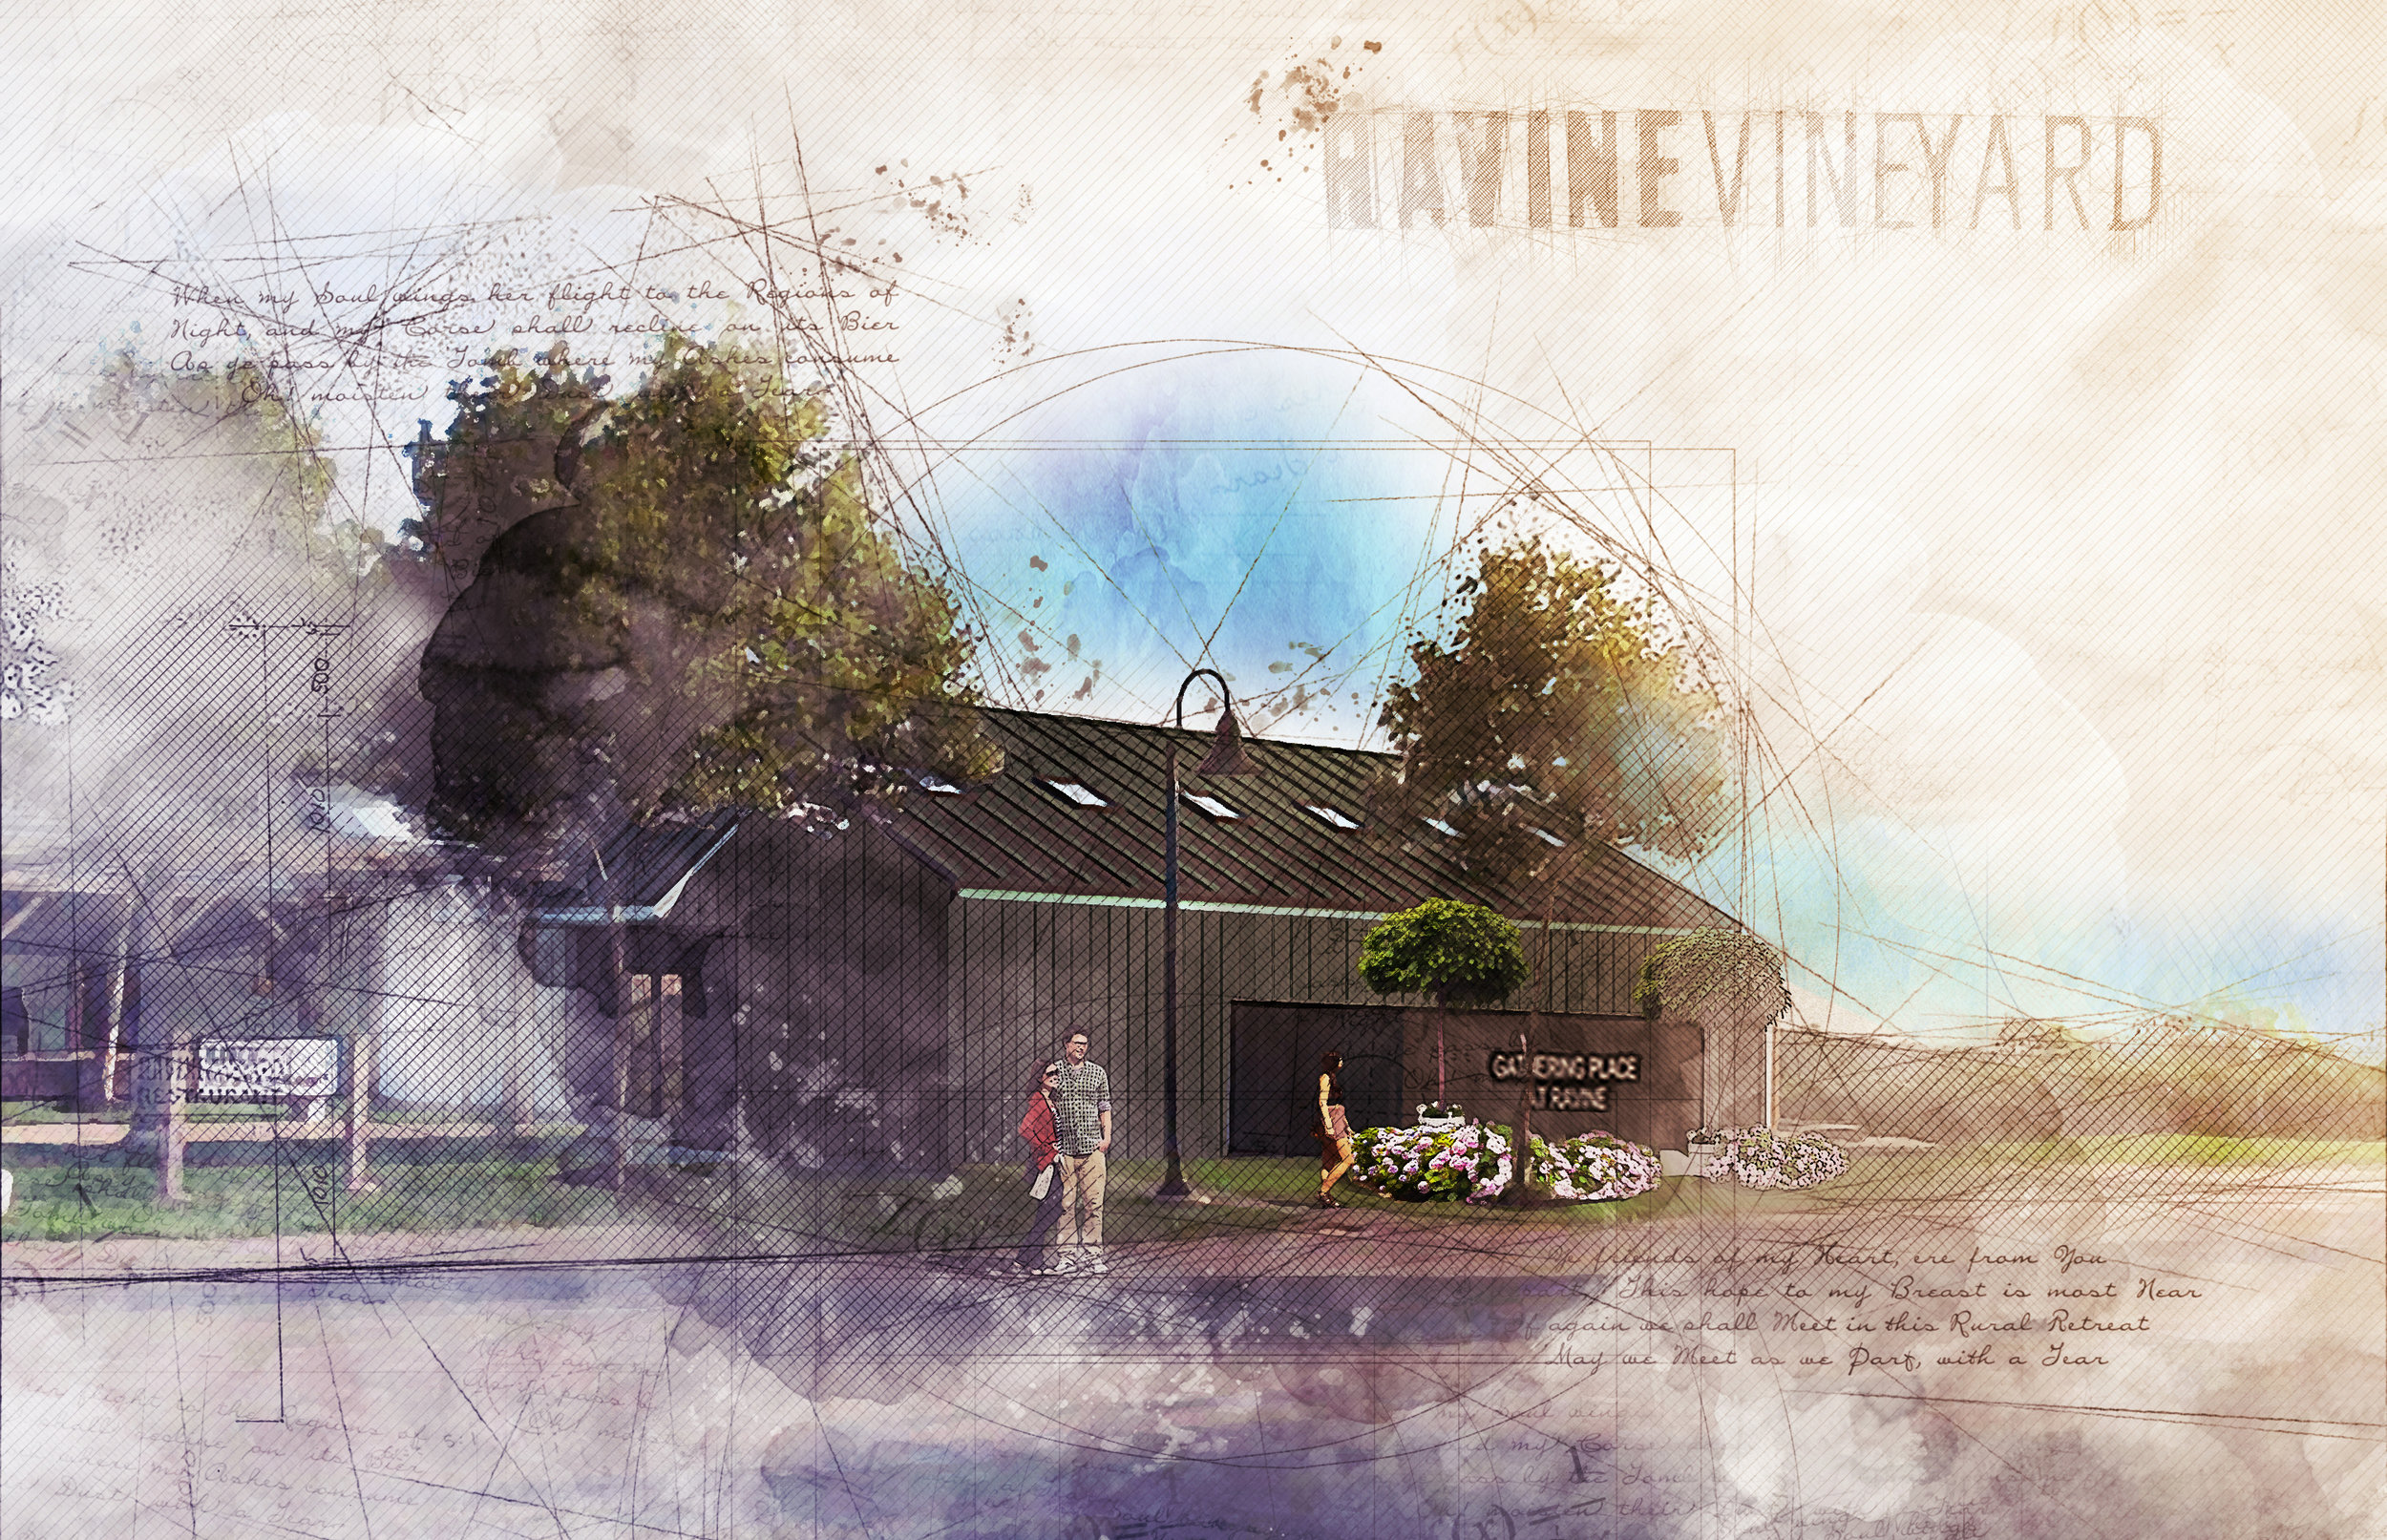 vineyard-bride-the-first-look-wedding-show-2019-ravine-vineyard-winery-vendosrs-niagara-toronto-southern-ontario001.JPG